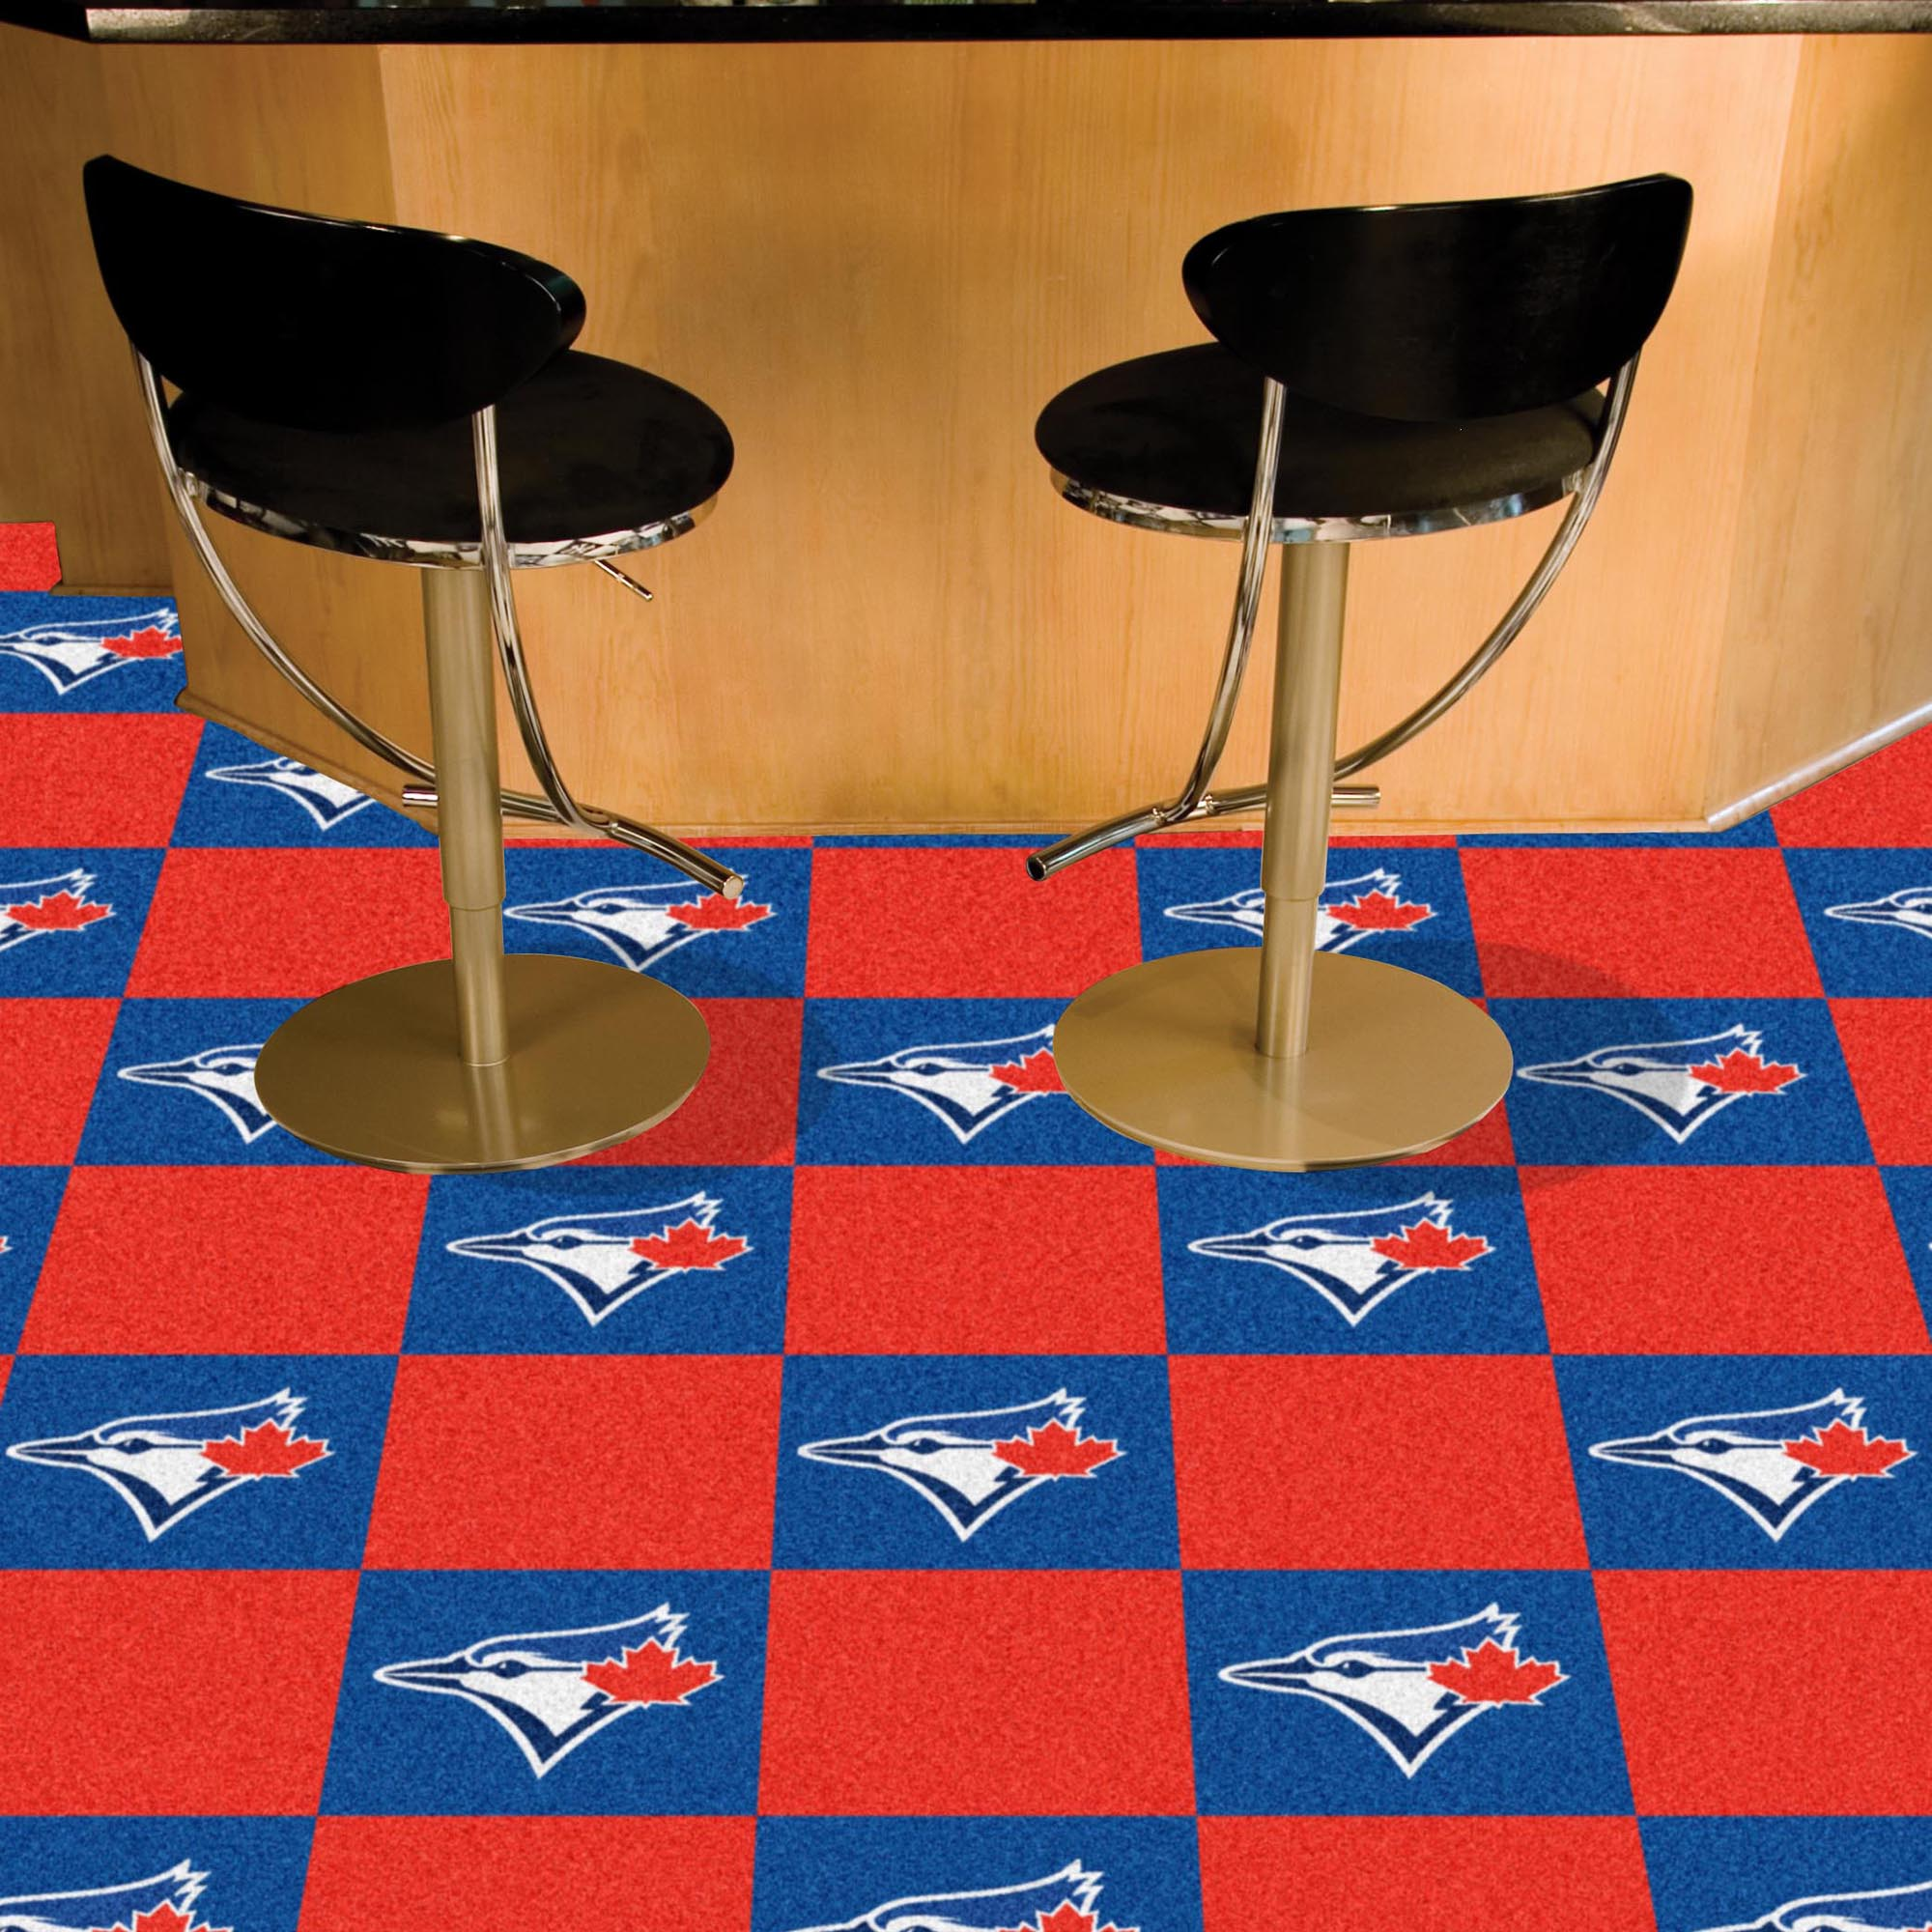 Toronto Blue Jays Carpet Tiles 18x18 In Buy At Khc Sports